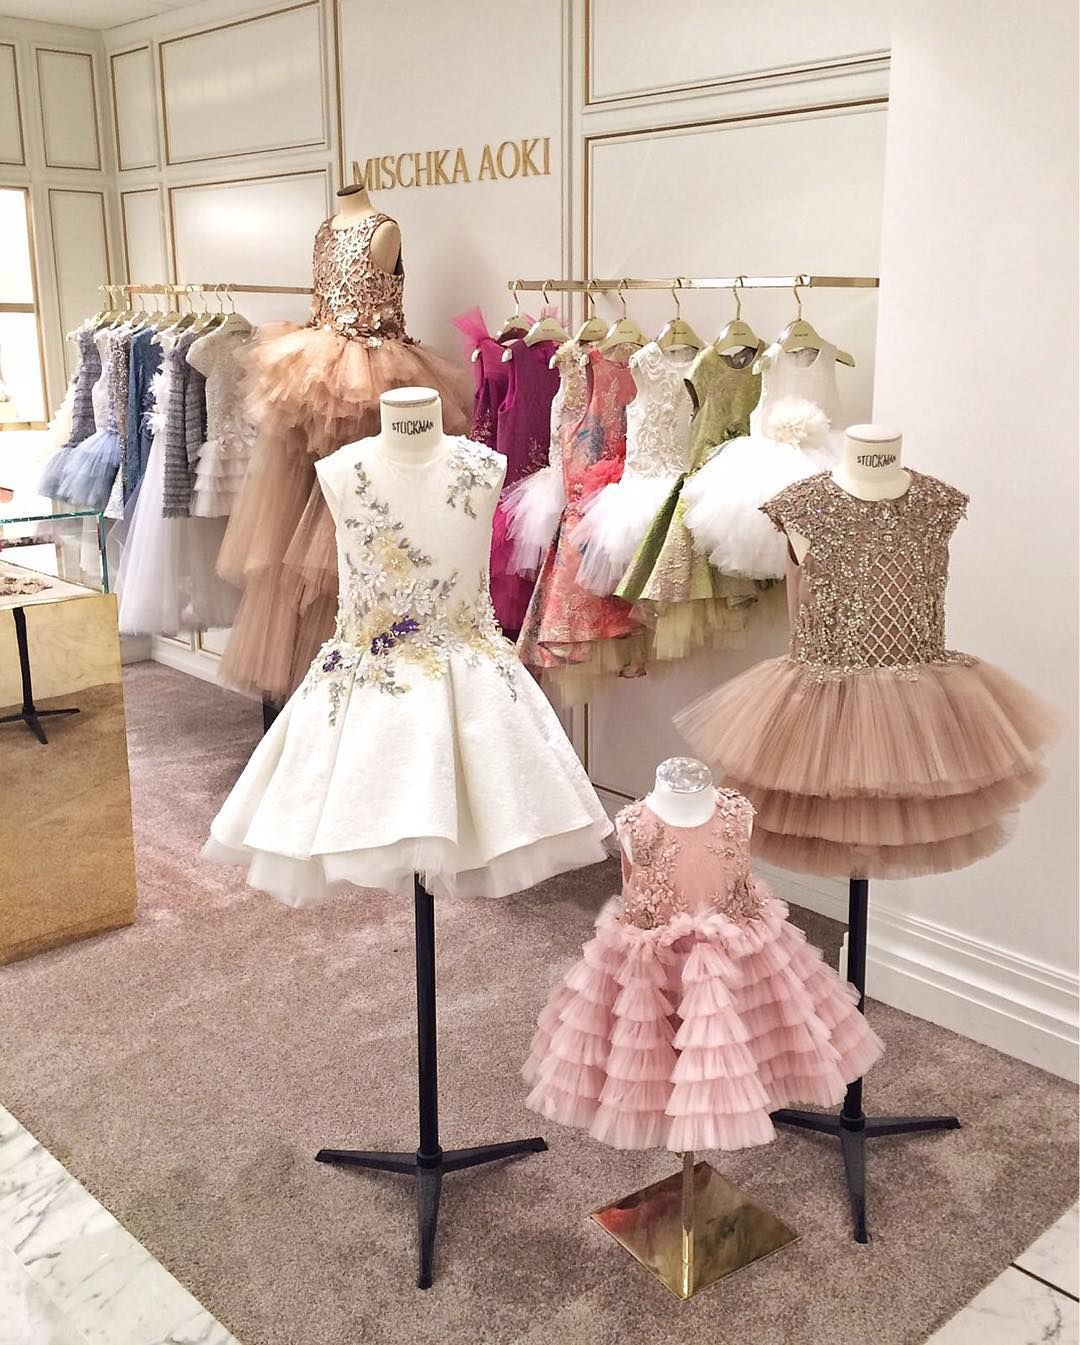 Pin on MISCHKA AOKI HAUTE COUTURE CHILDREN (WINNIE AOKI)